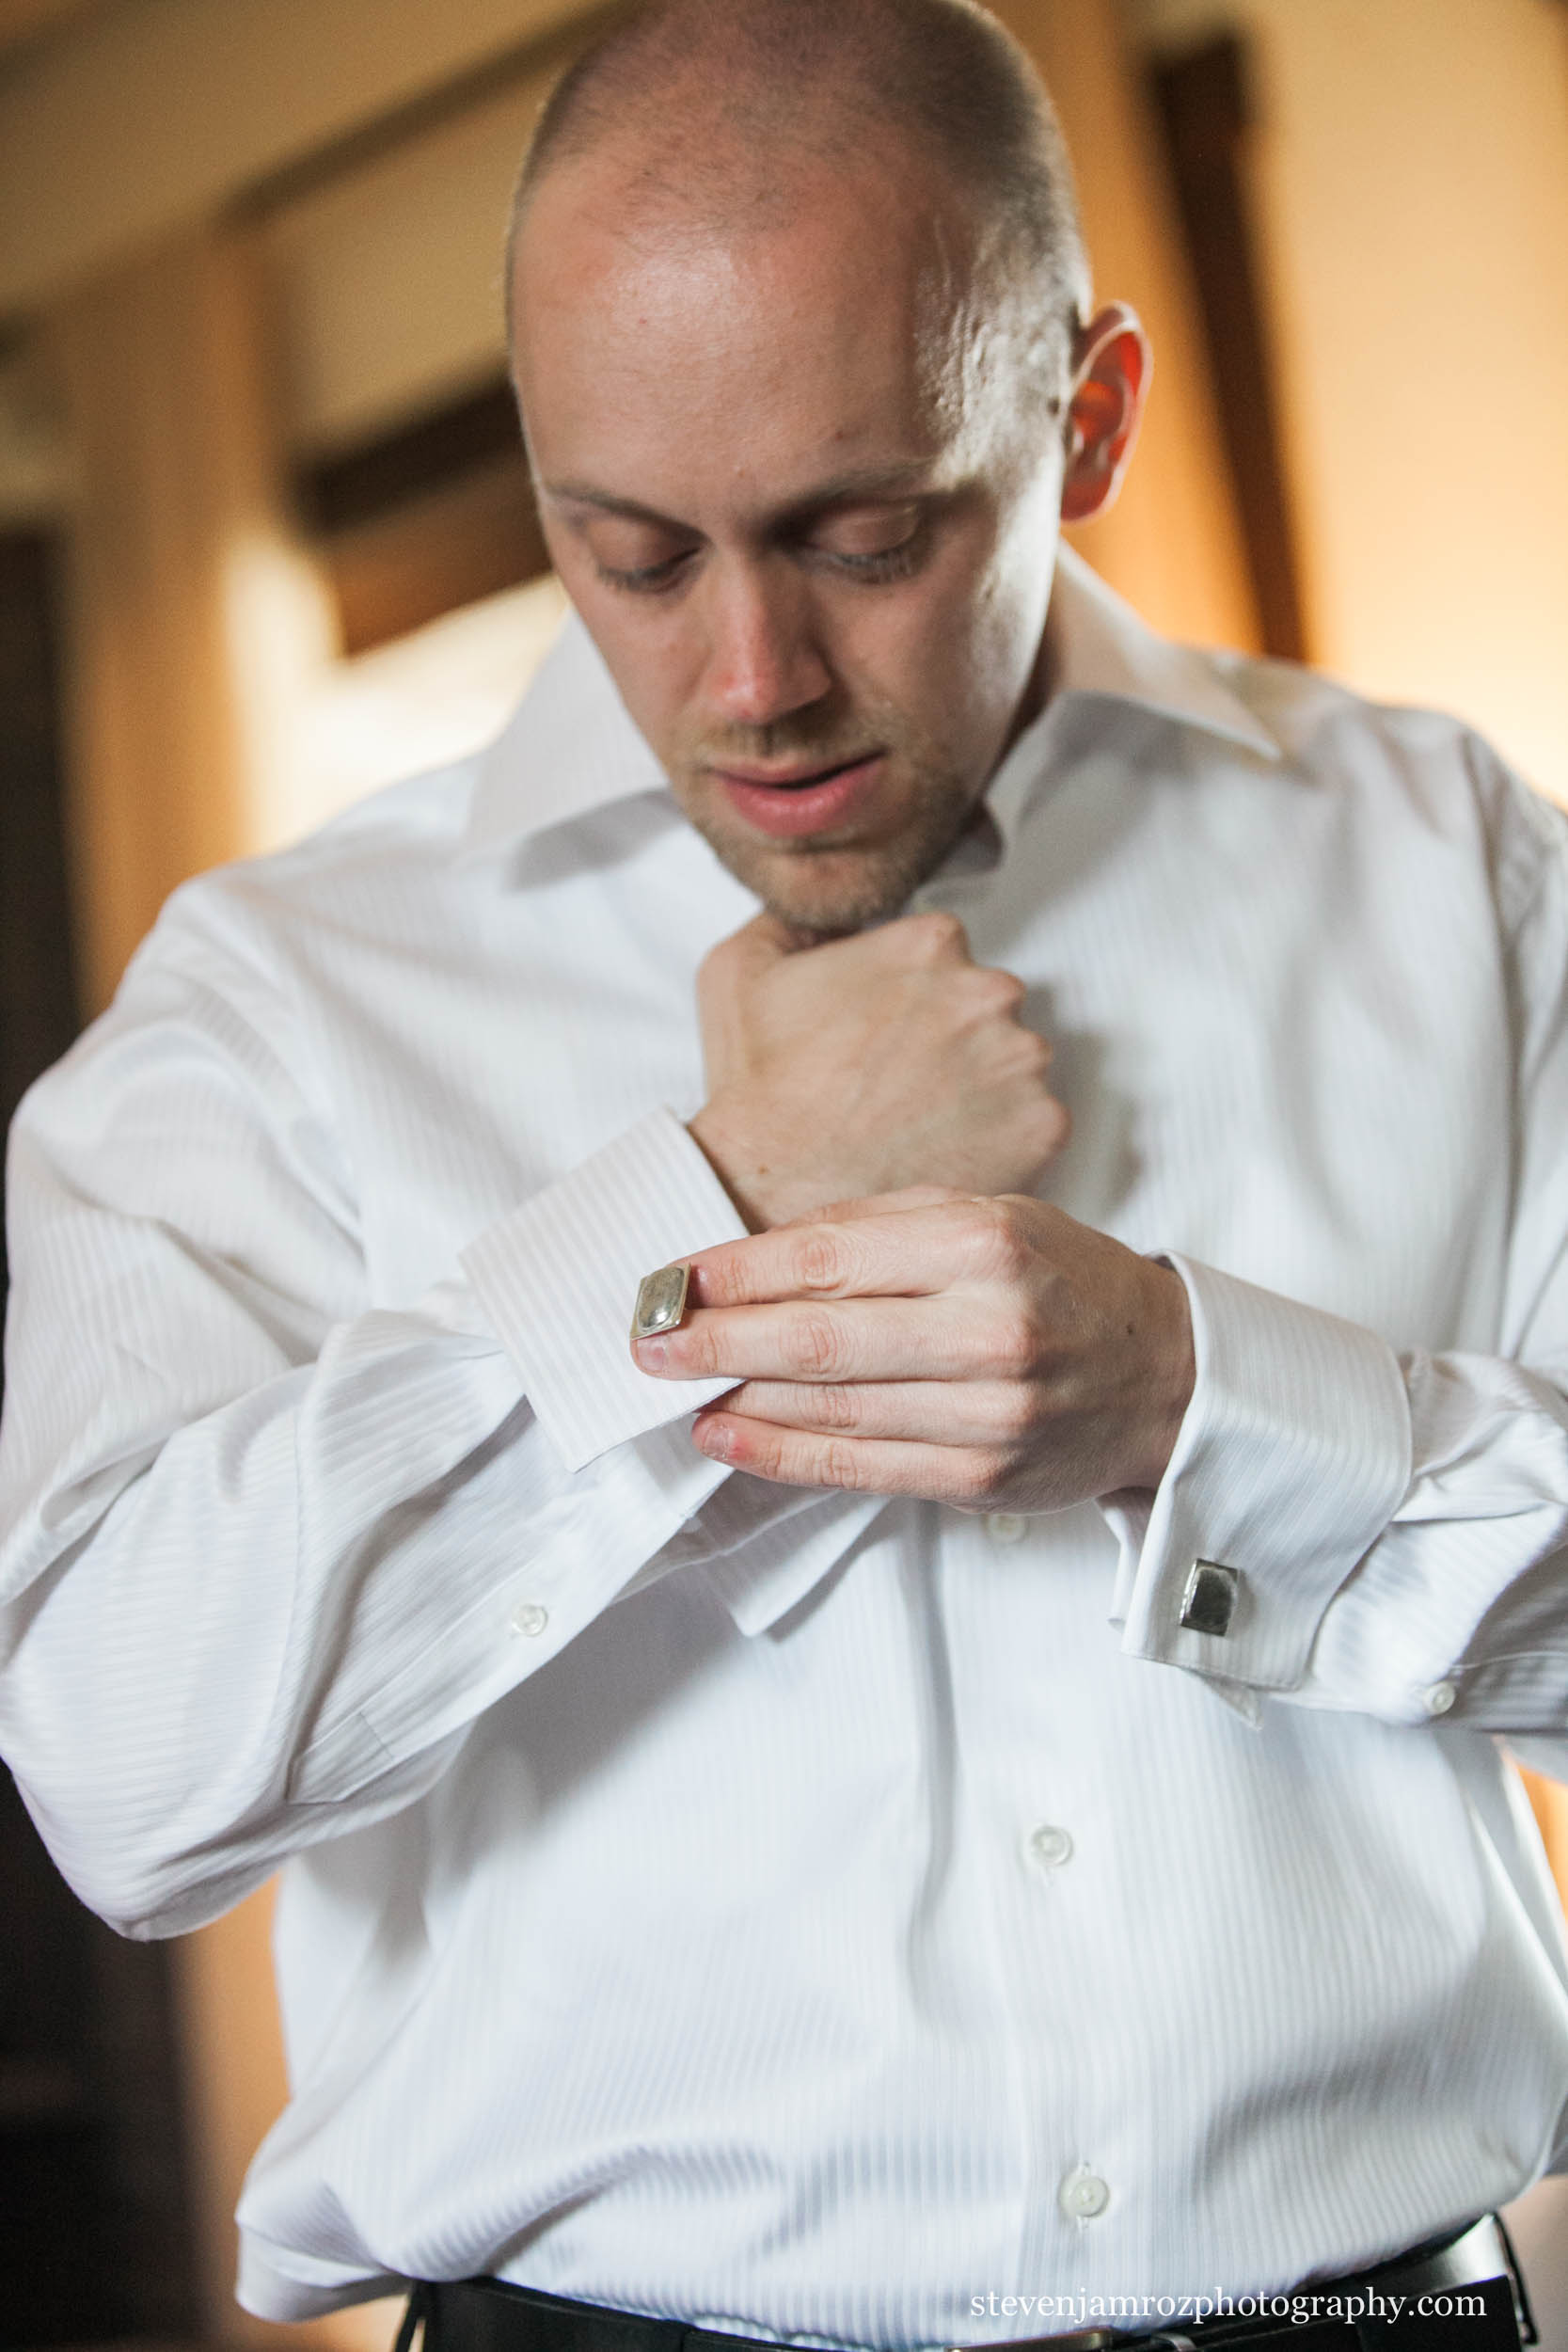 cuff-links-groom-raleigh-wedding-steven-jamroz-photography-0285.jpg